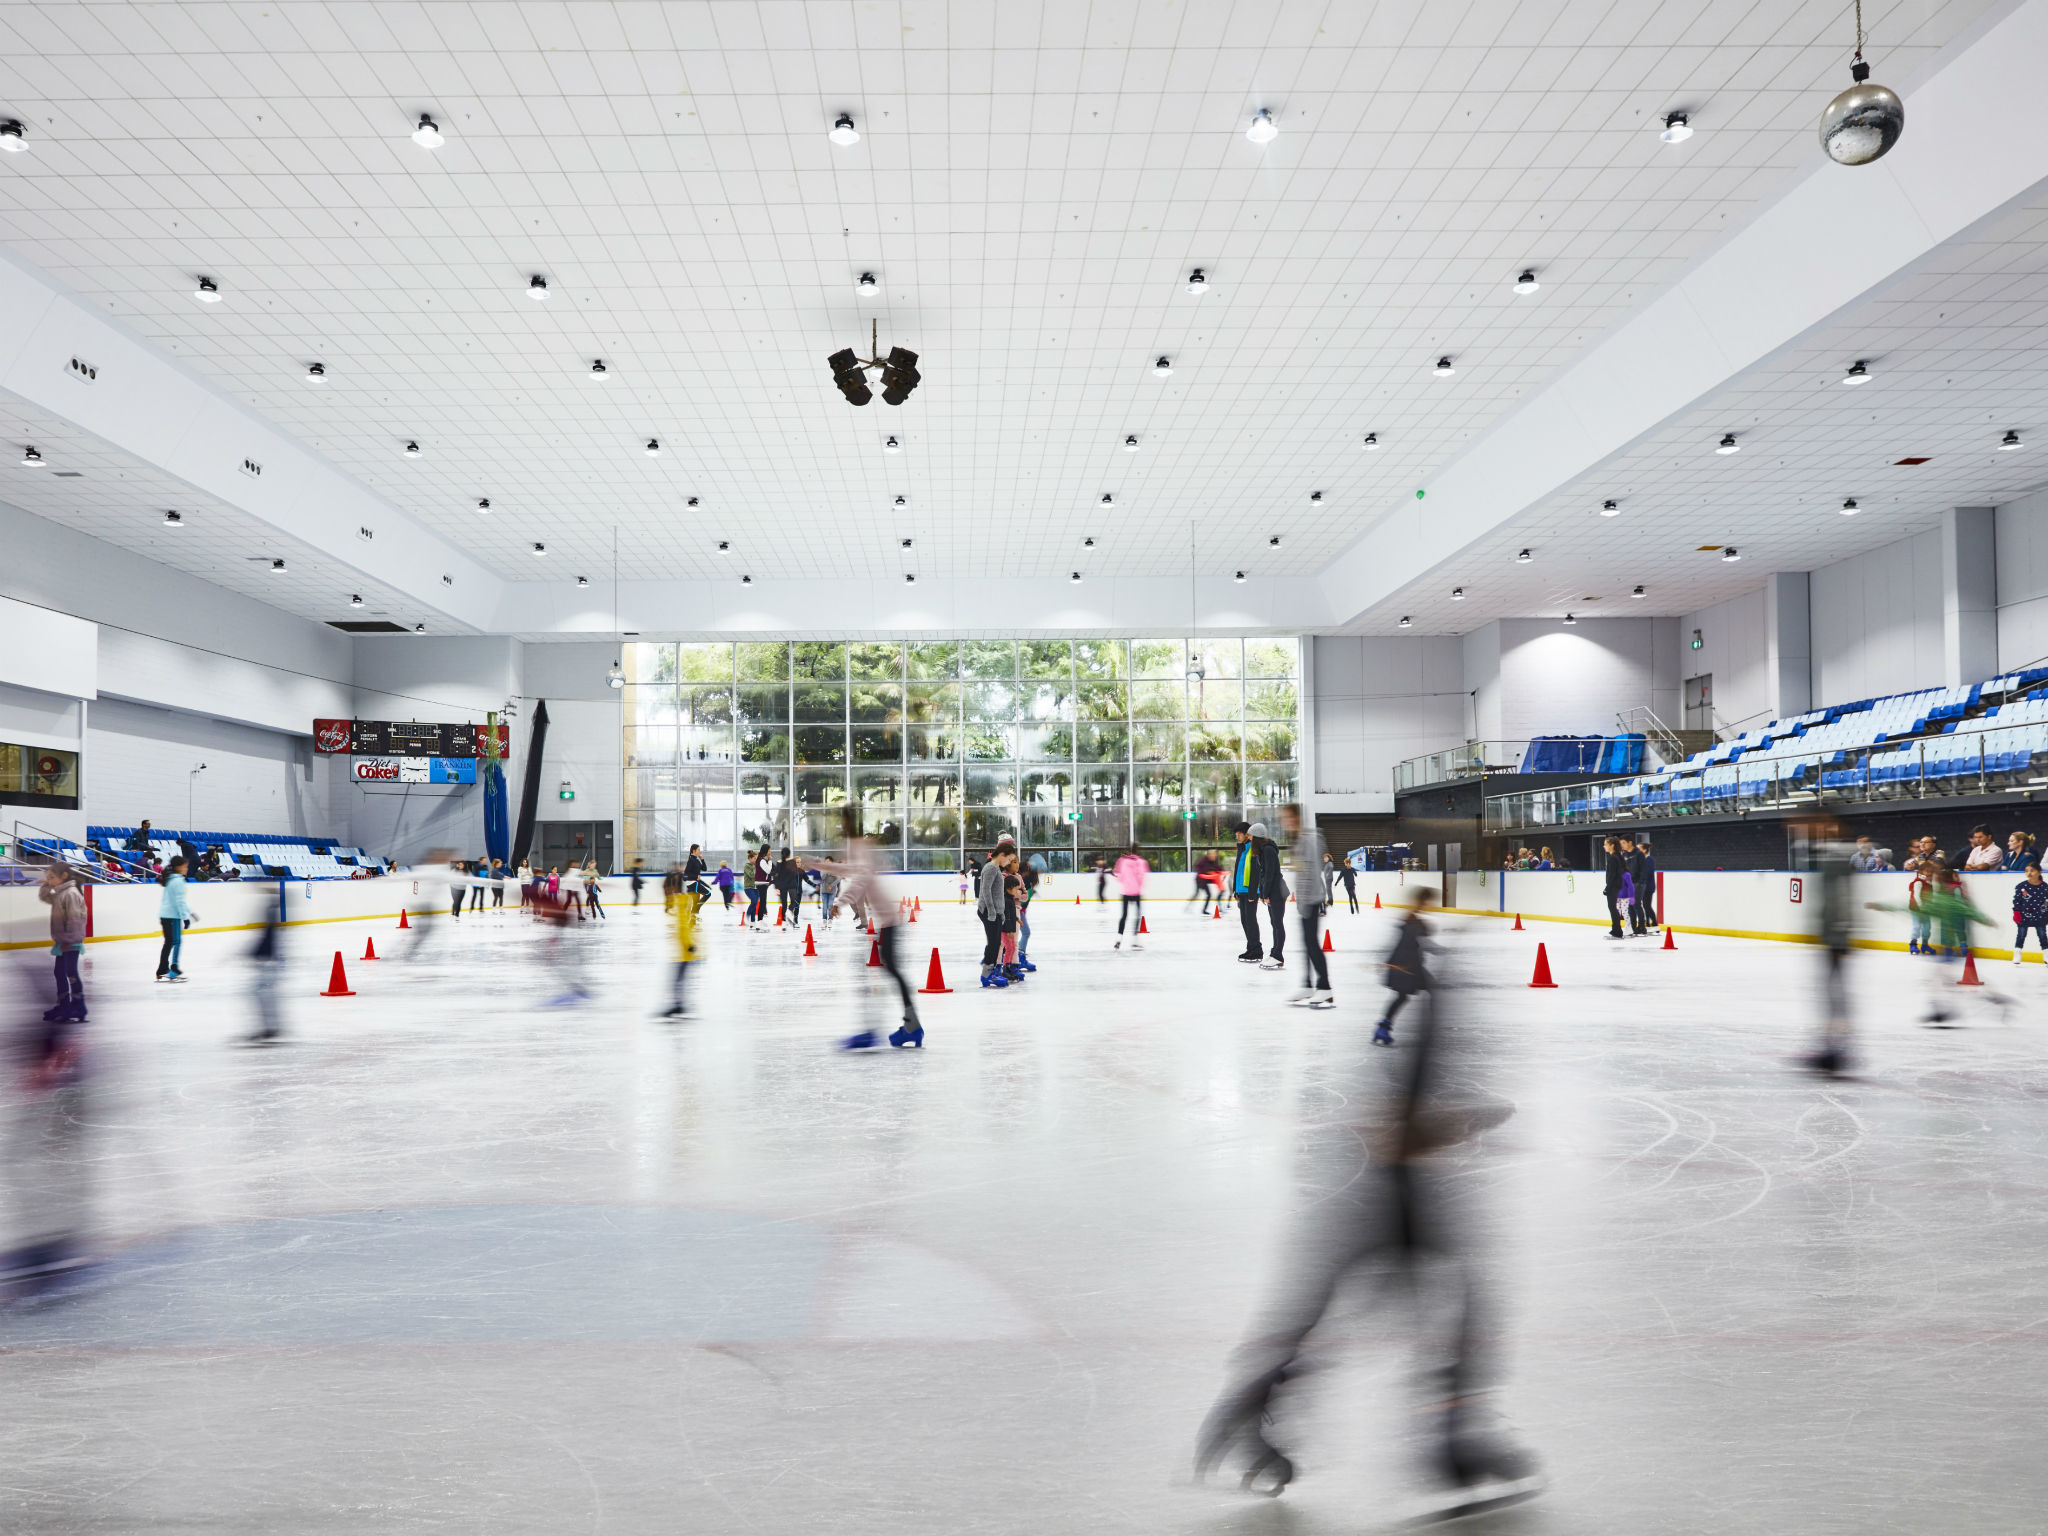 Macquarie Ice Rink will be demolished to make way for a new shopping centre